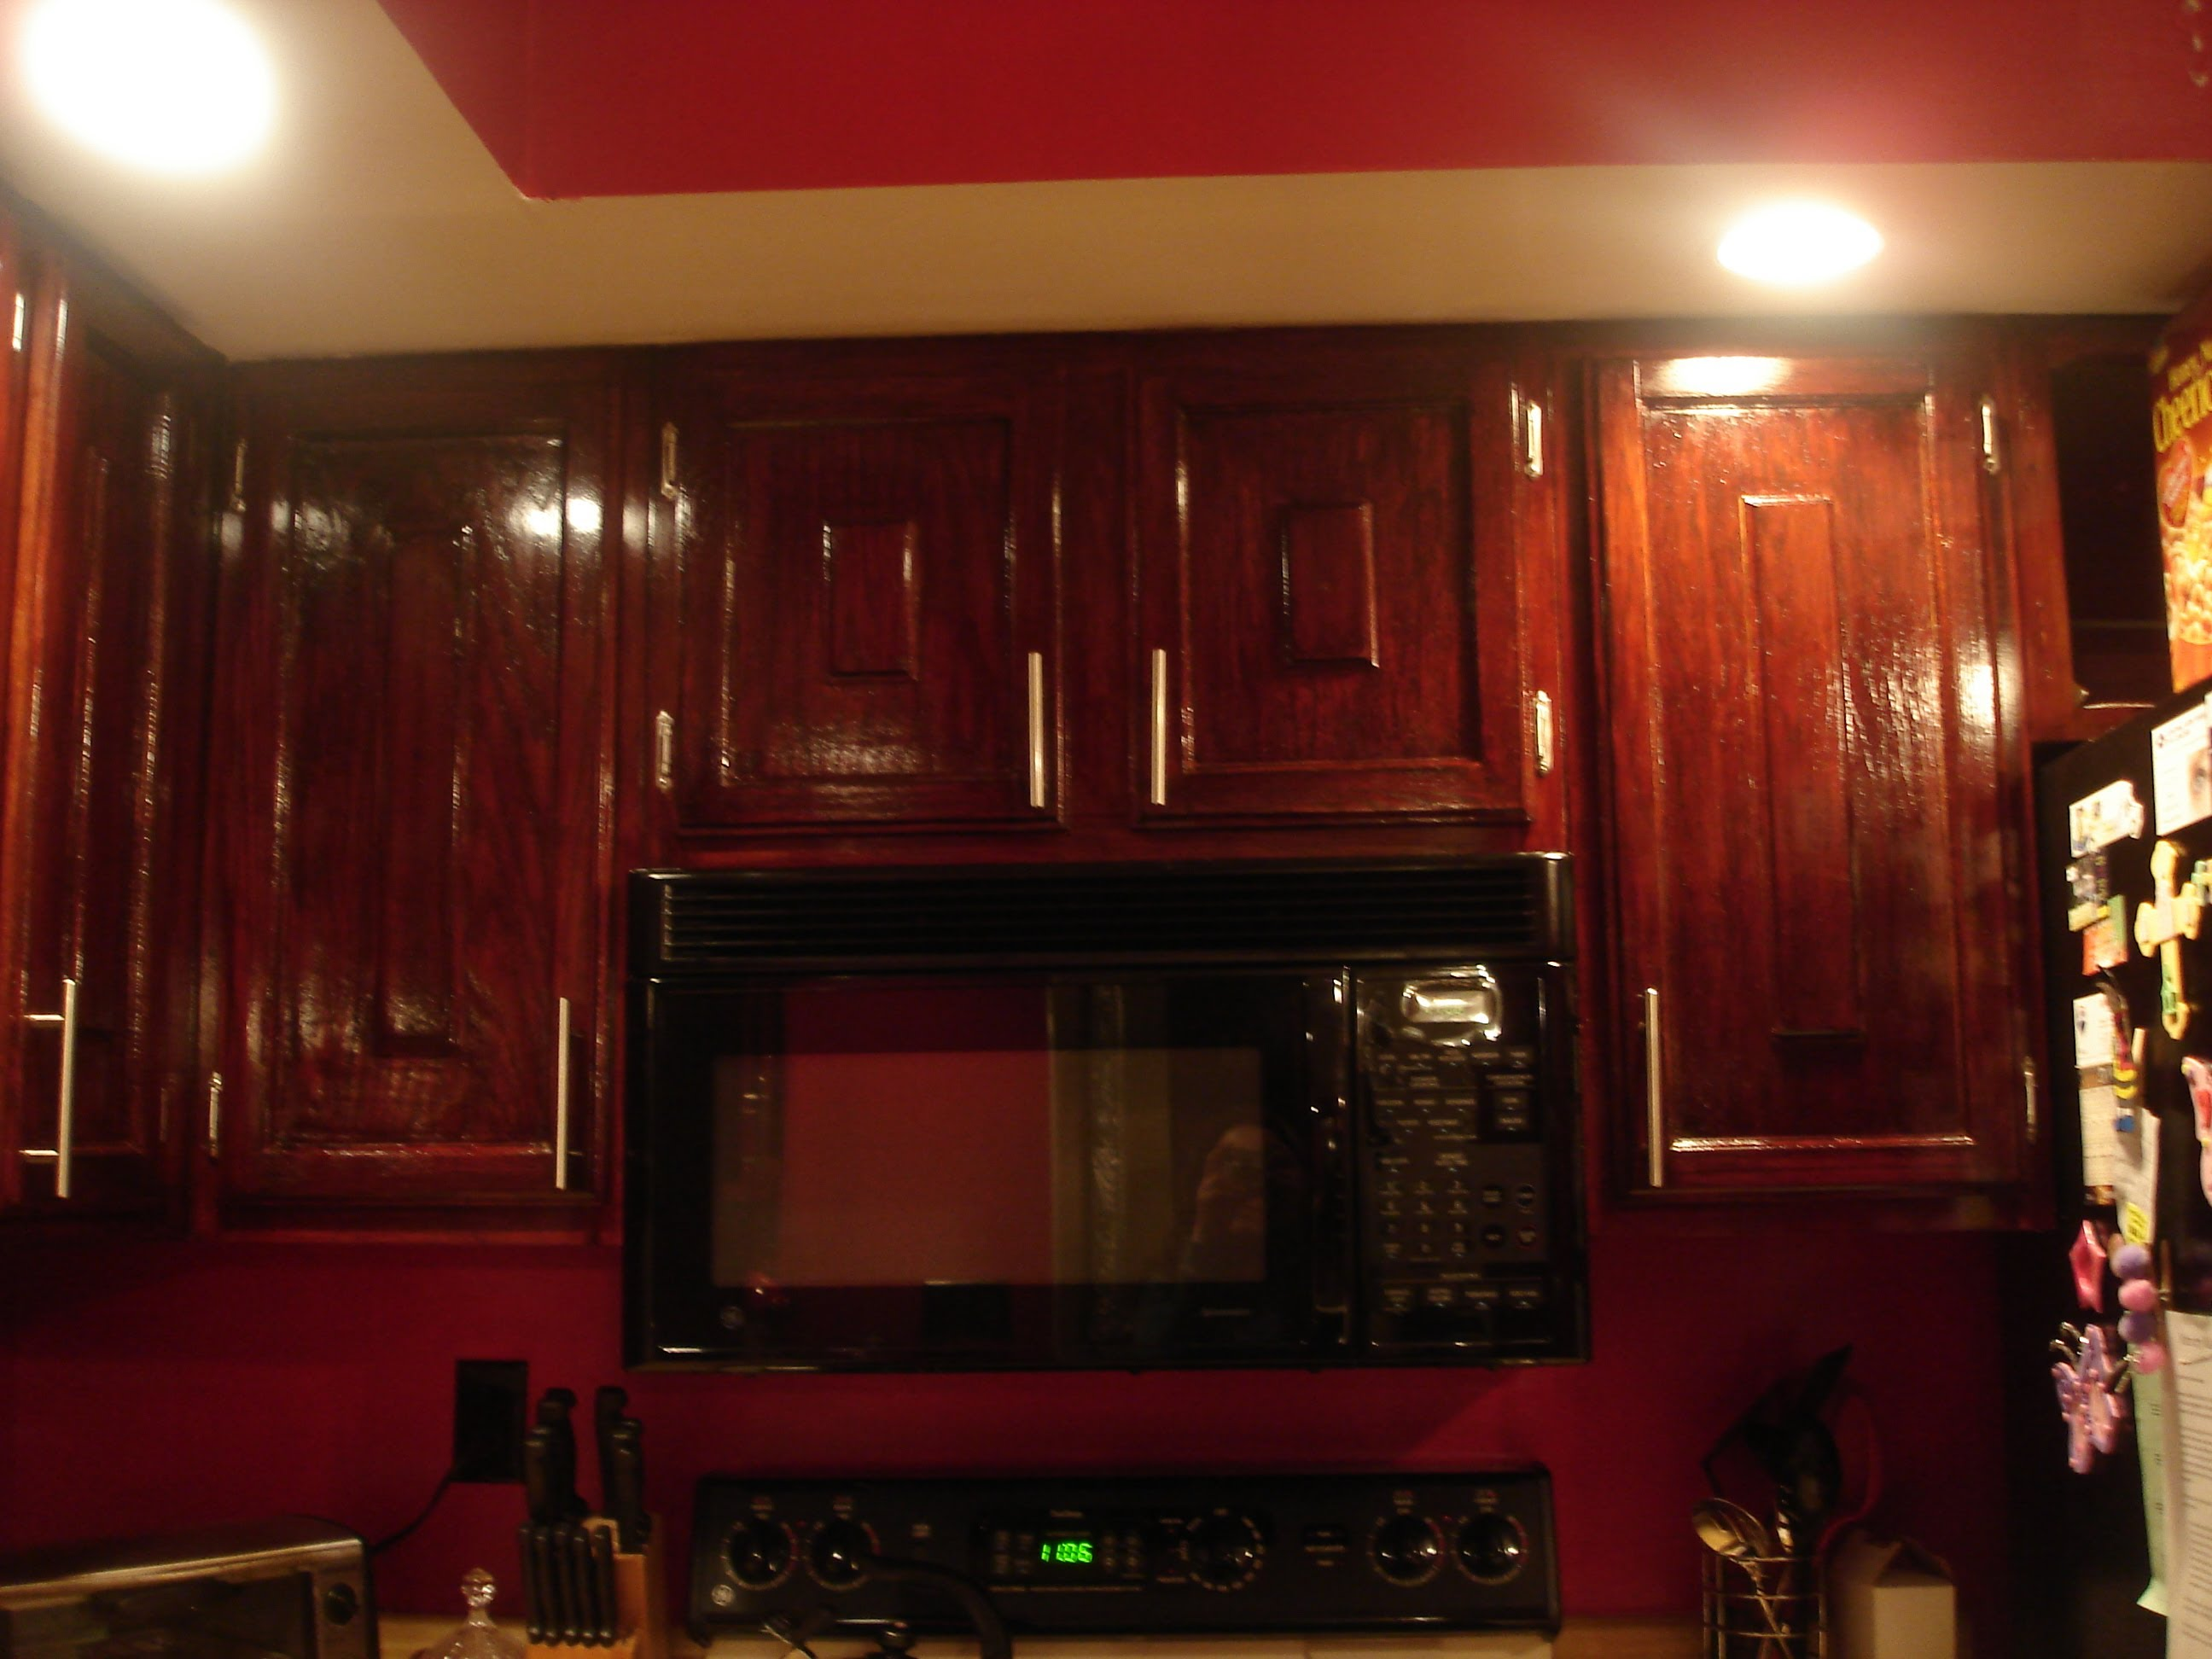 restaining-kitchen-cabinets-gel-stain-photo-8